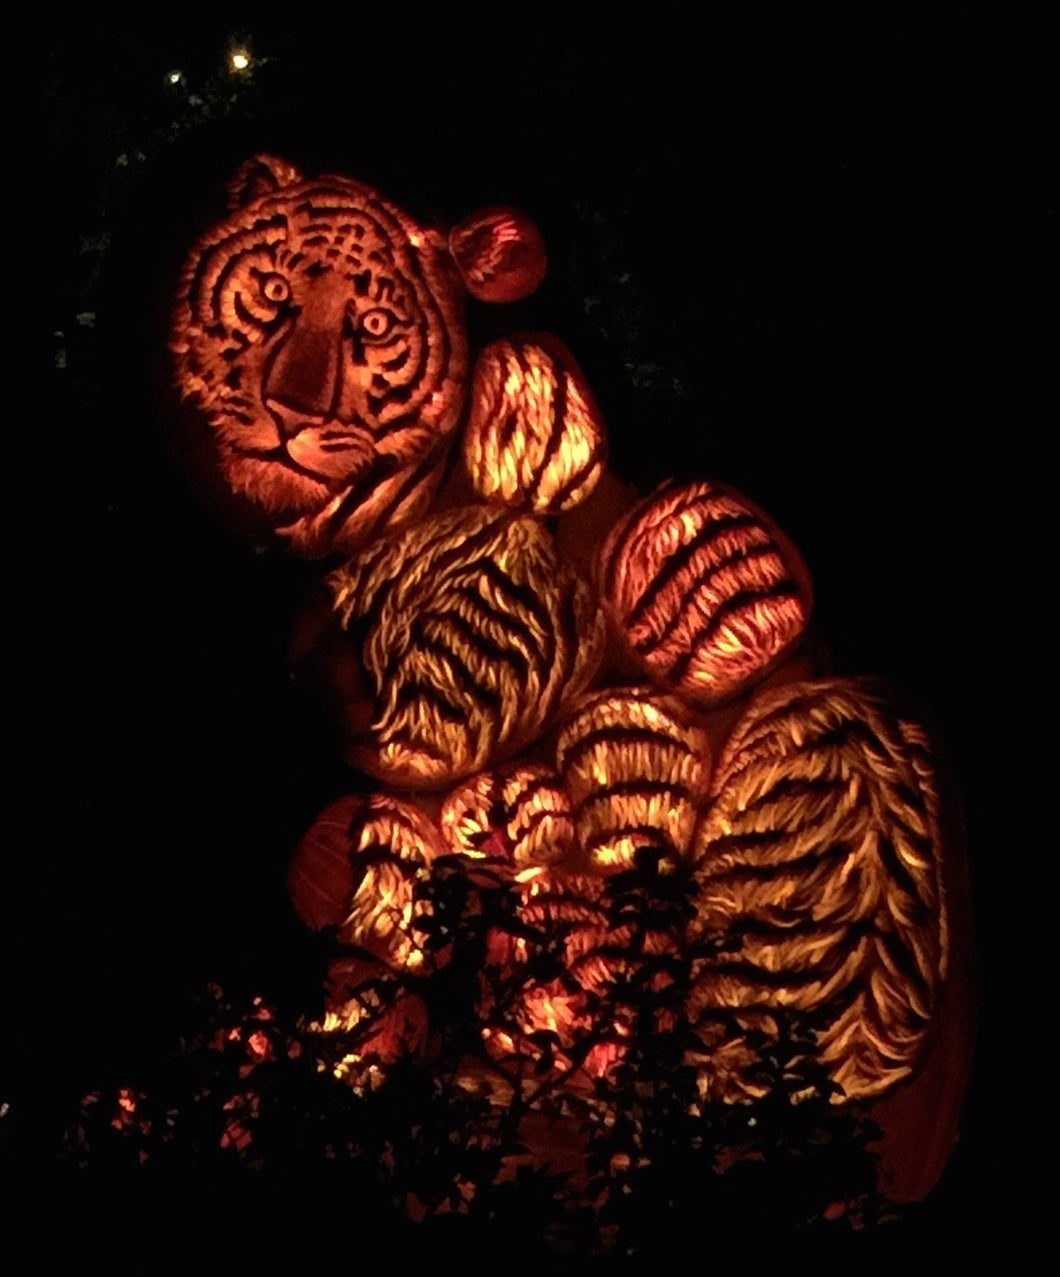 Tiger Lights Diamond Painting Kit - DIY